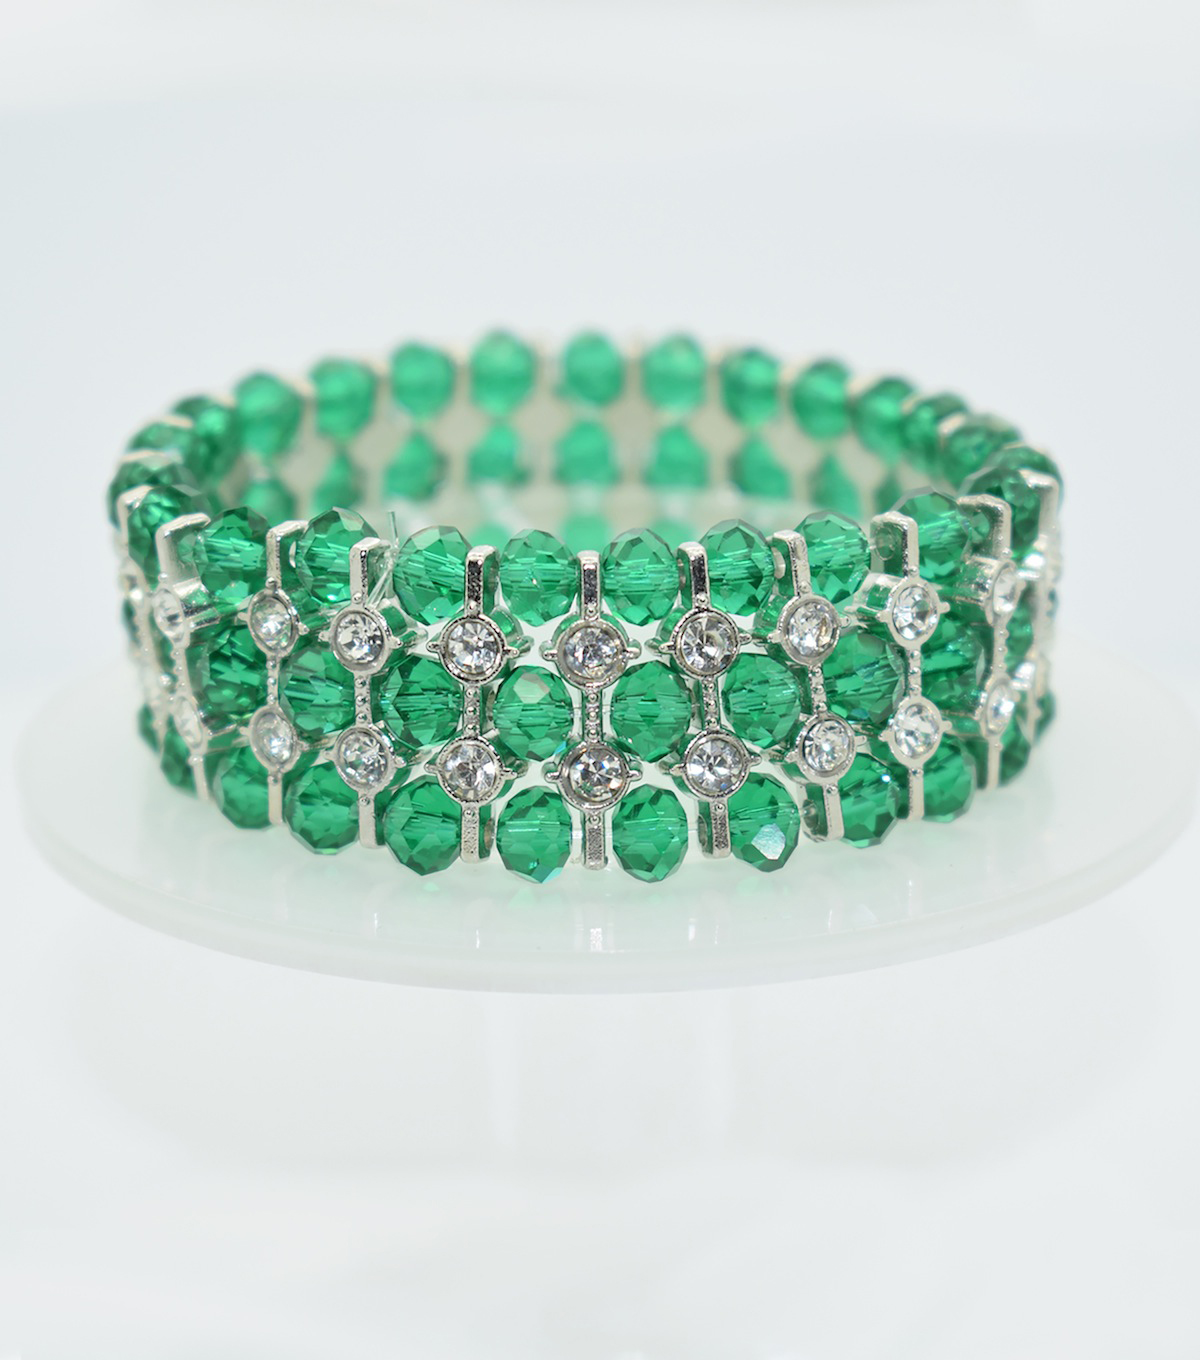 Glass Beads Spacer Bracelet-Teal